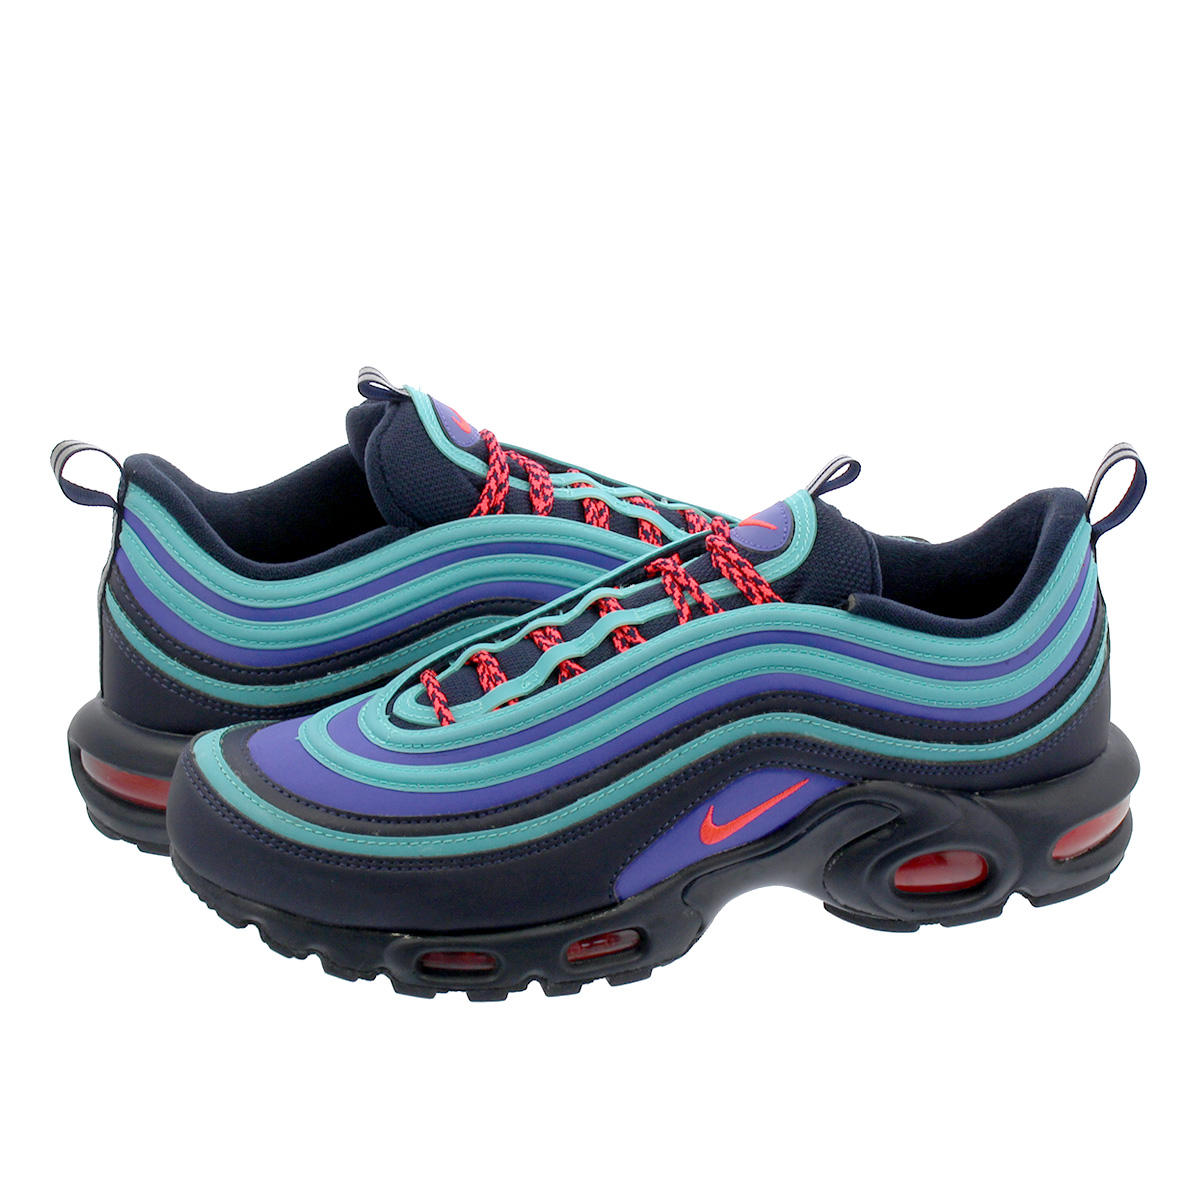 7e0f74a17d SELECT SHOP LOWTEX: NIKE AIR MAX PLUS 97 Kie Ney AMAX +97 OBSIDIAN/FLASH  CRIMSON av7936-400 | Rakuten Global Market